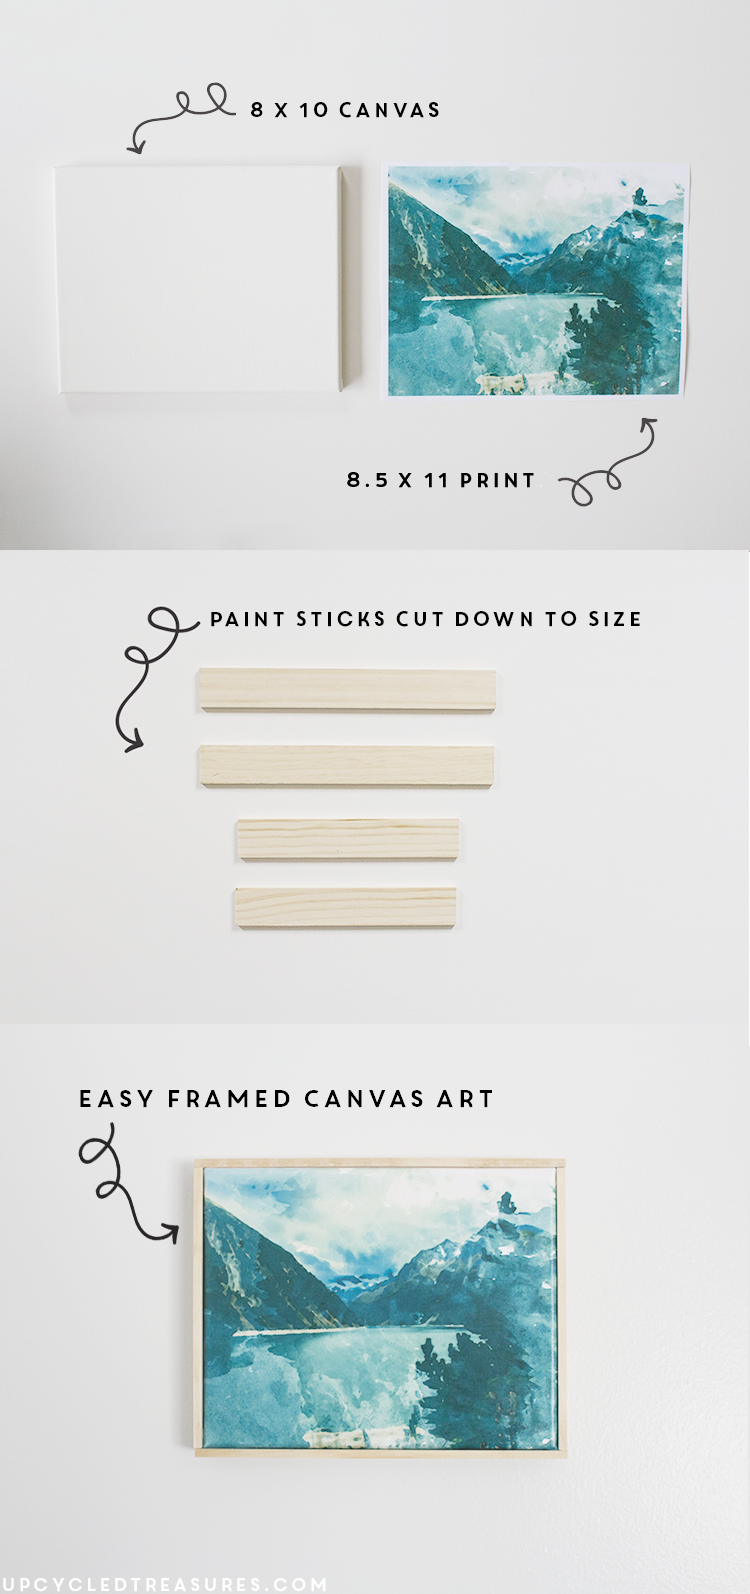 diy wall art from printed photo and upcycled paint sticks. | MountainModernLife.com